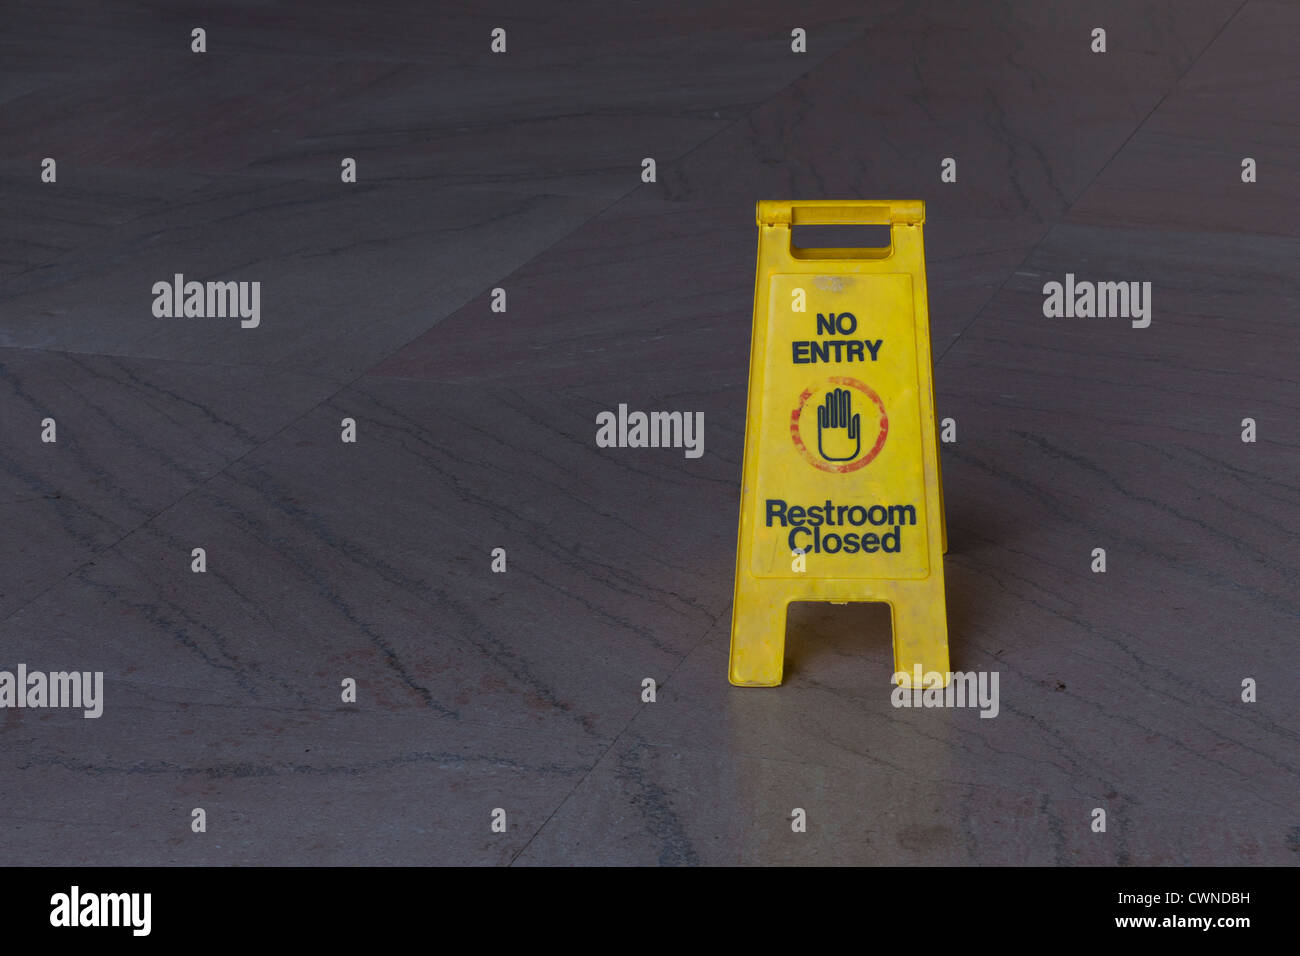 No Entry - Restroom Closed floor sign - Stock Image